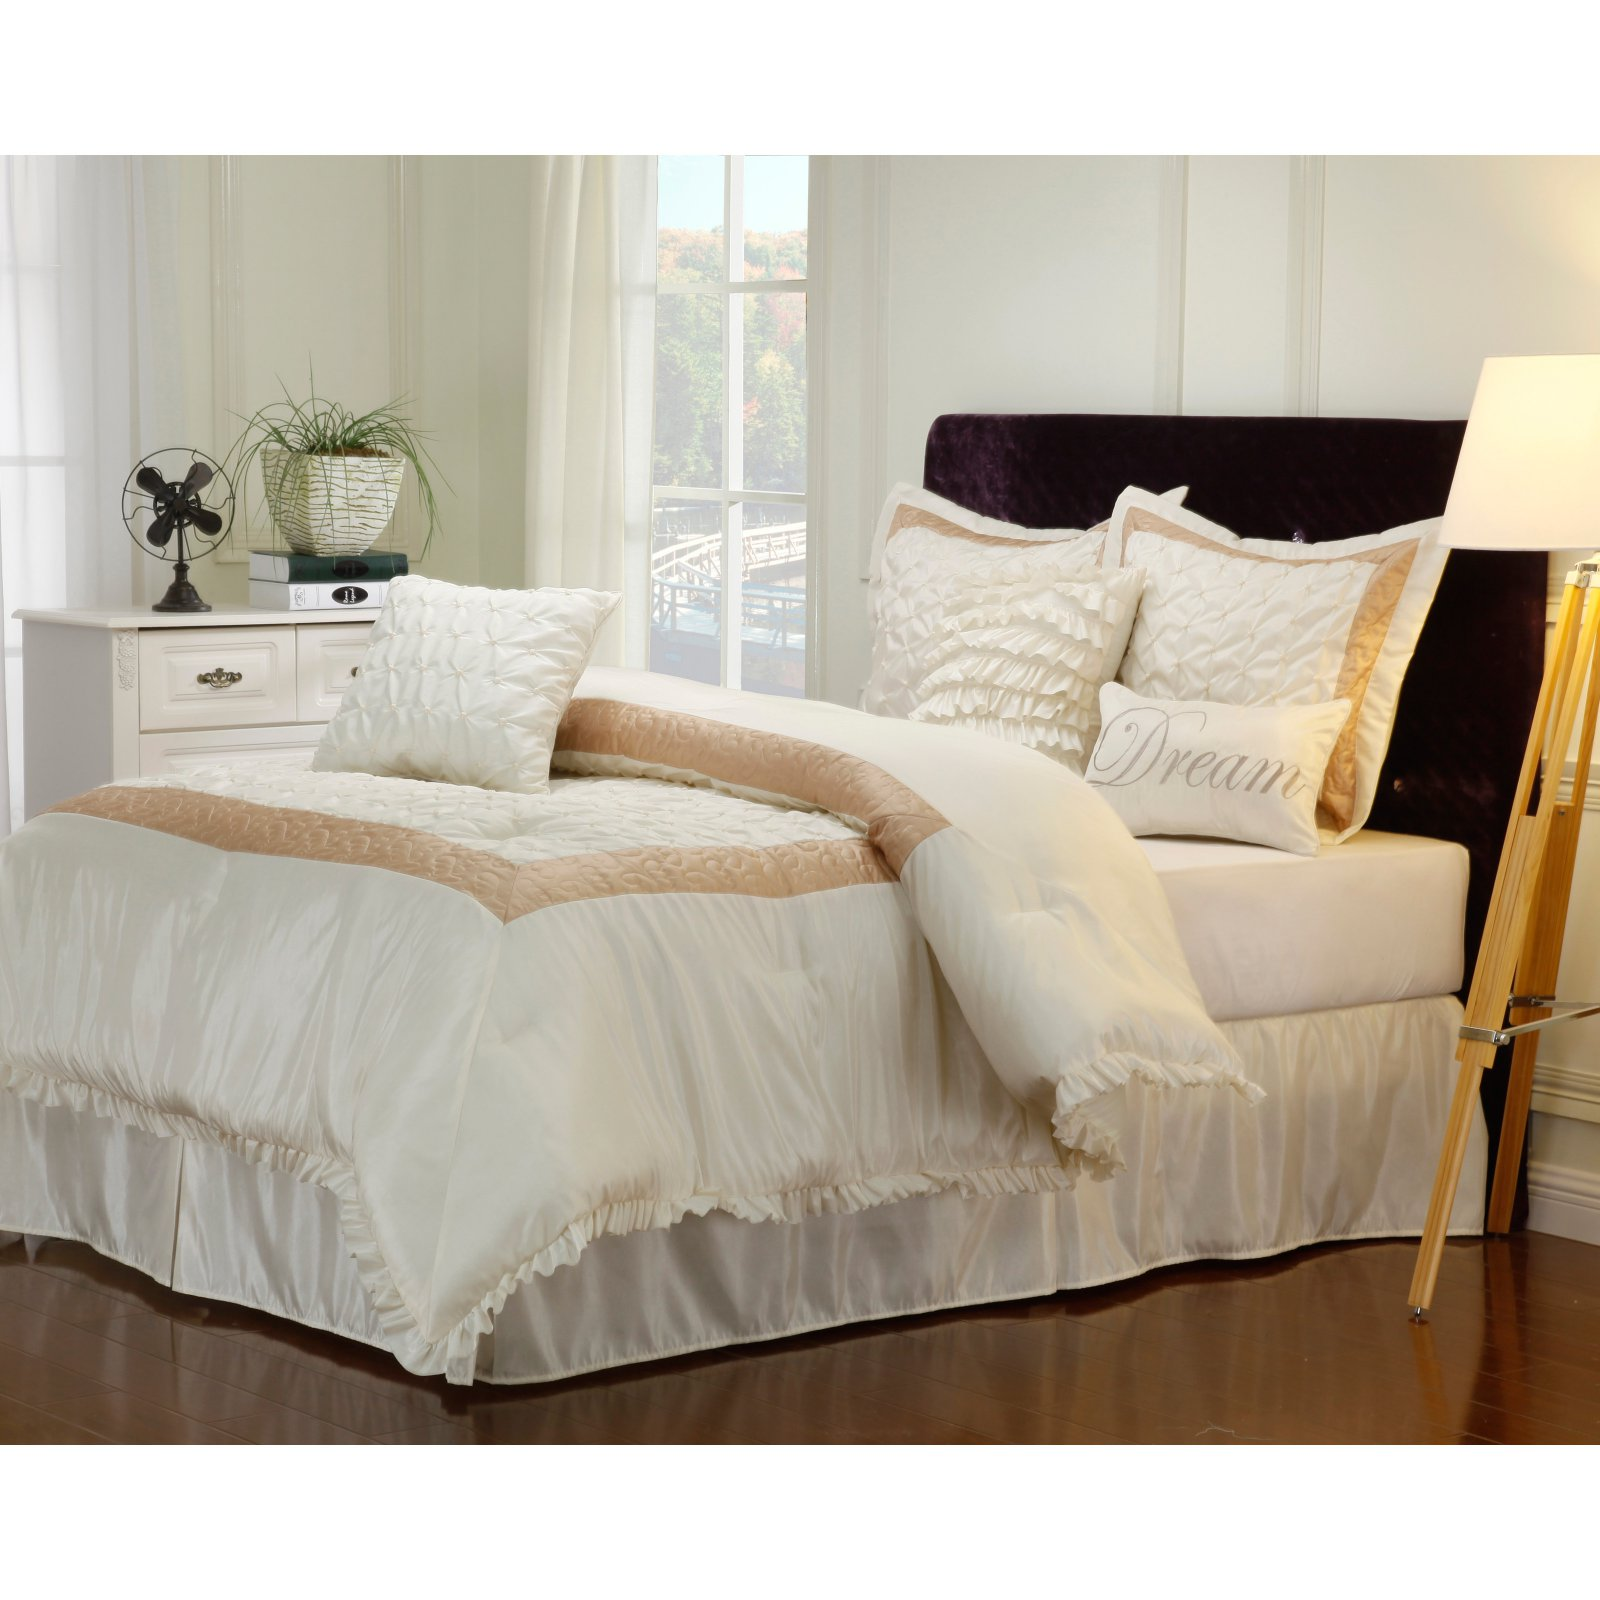 Superior Dream 7 Piece Bedding Set